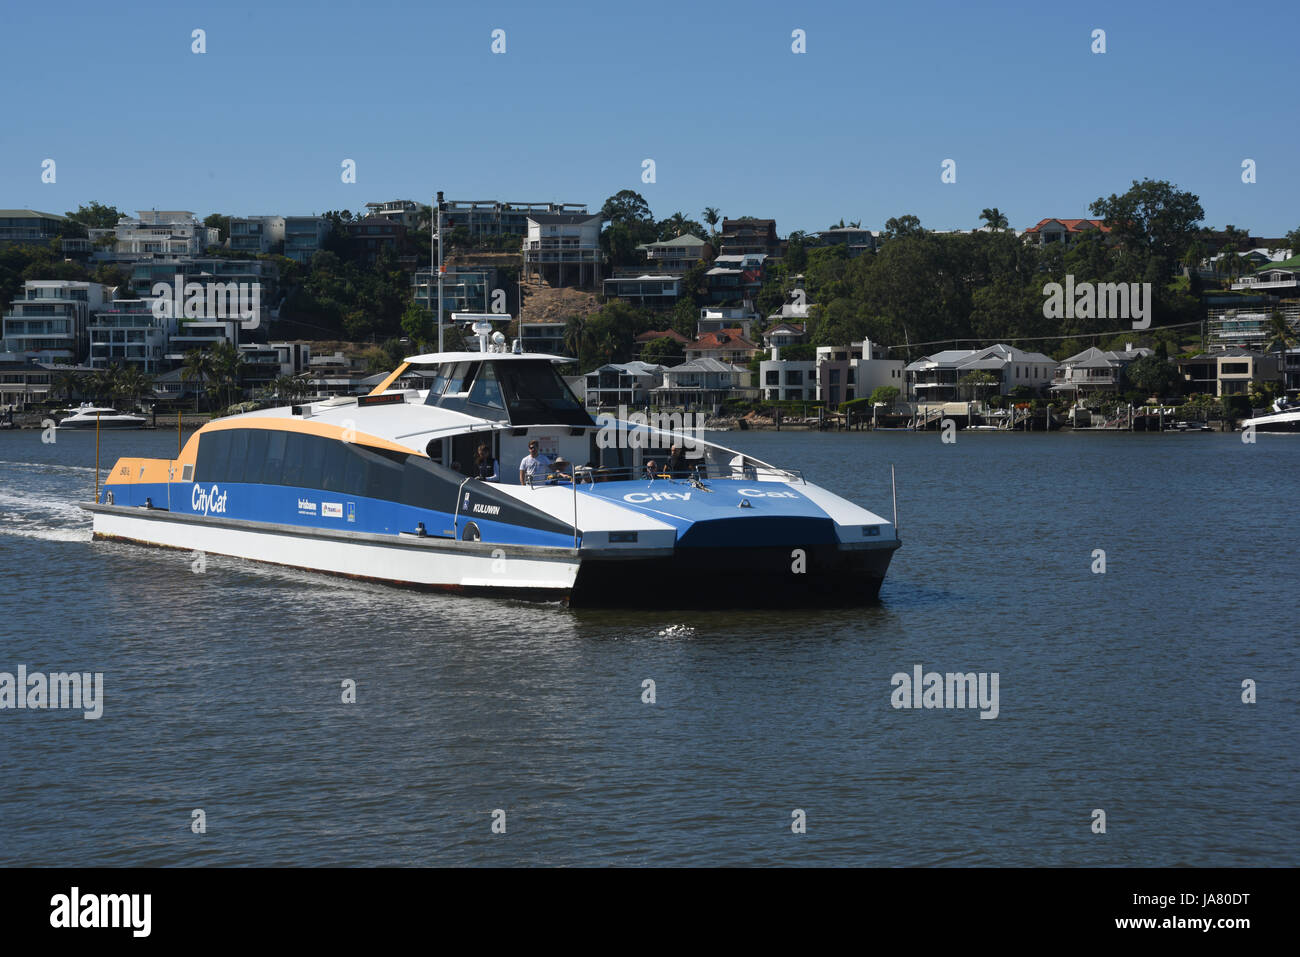 Brisbane, Australia: CityCat passenger ferry approaching New Farm Wharf on the Brisbane River - Stock Image